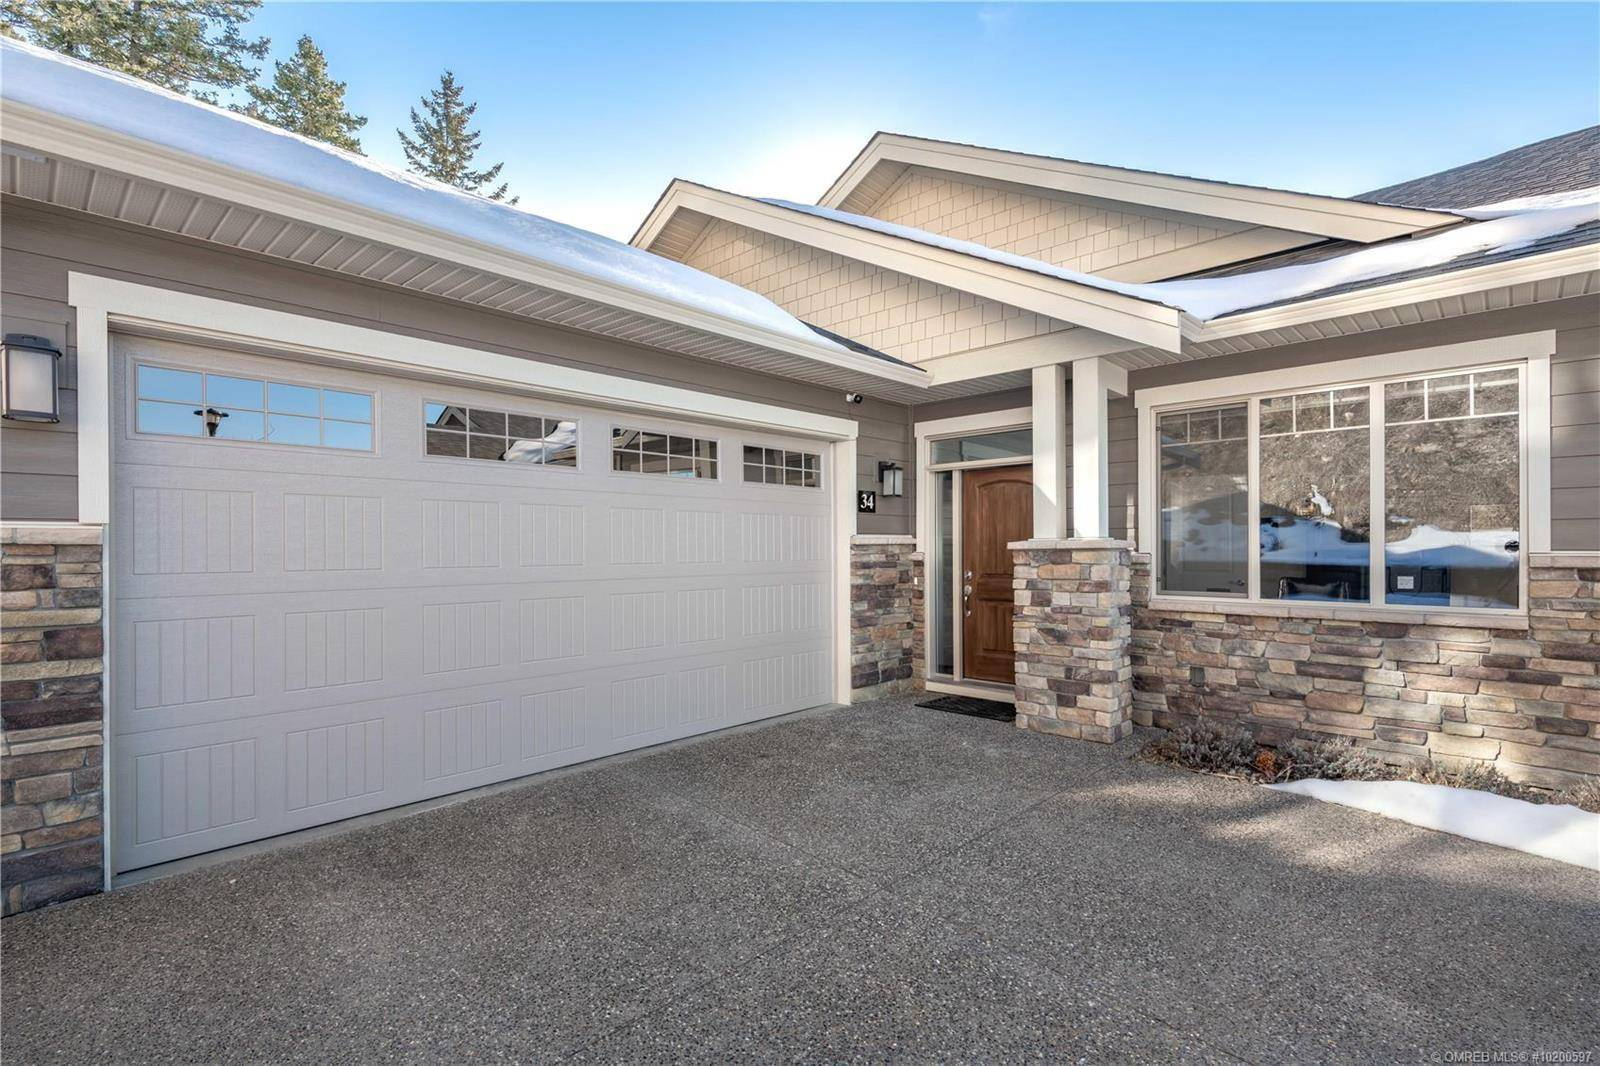 Buliding: 875 Stockley Street, Kelowna, BC